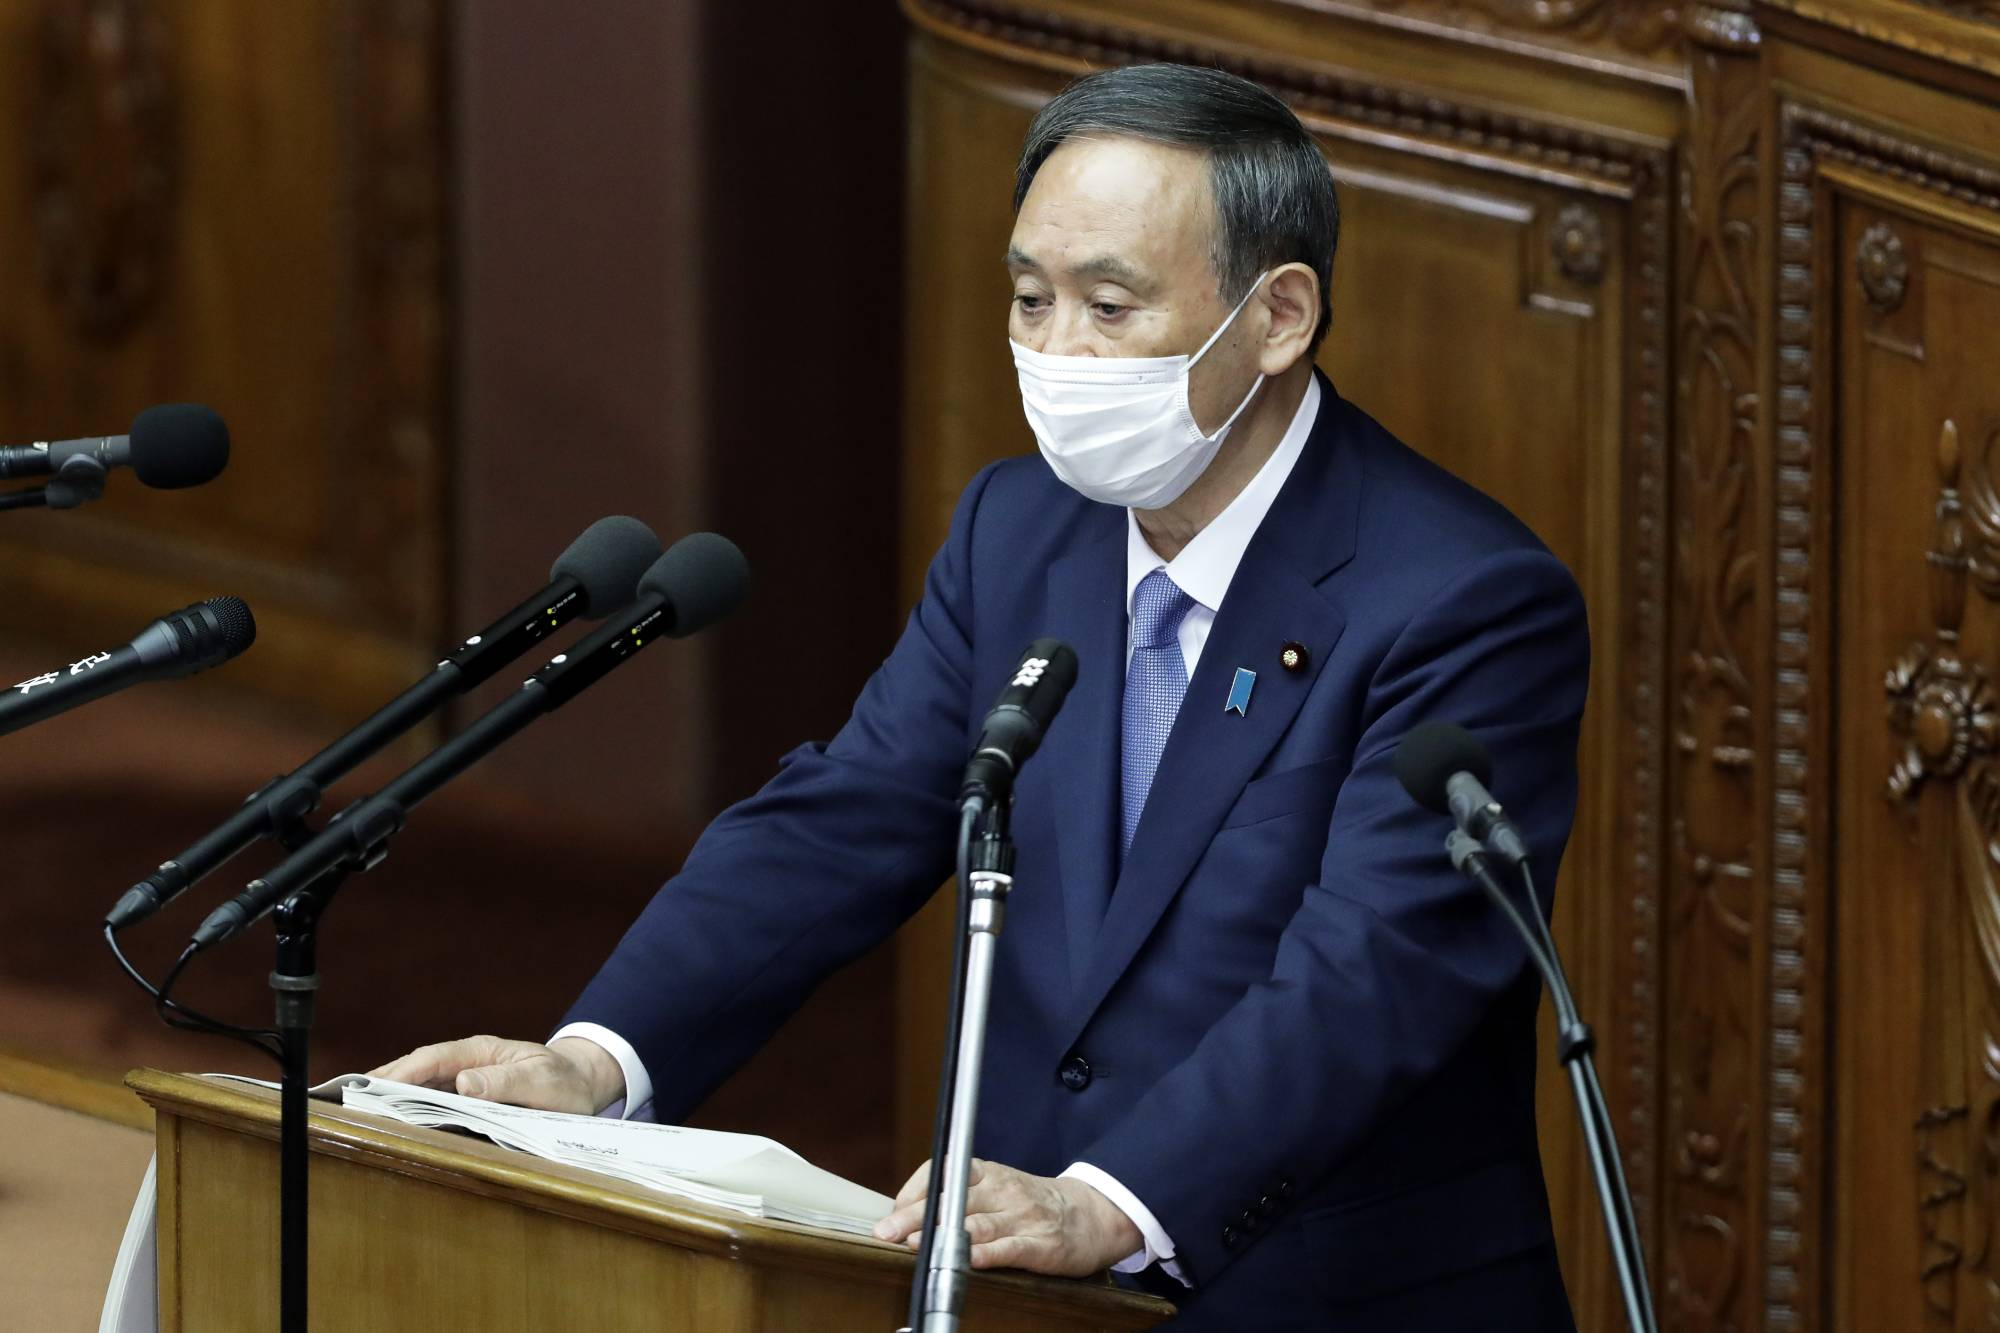 Prime Minister Yoshihide Suga told the Council on Economic and Fiscal Policy on Oct. 6 that it would serve as his administration's 'command center' for economic policy. | BLOOMBERG